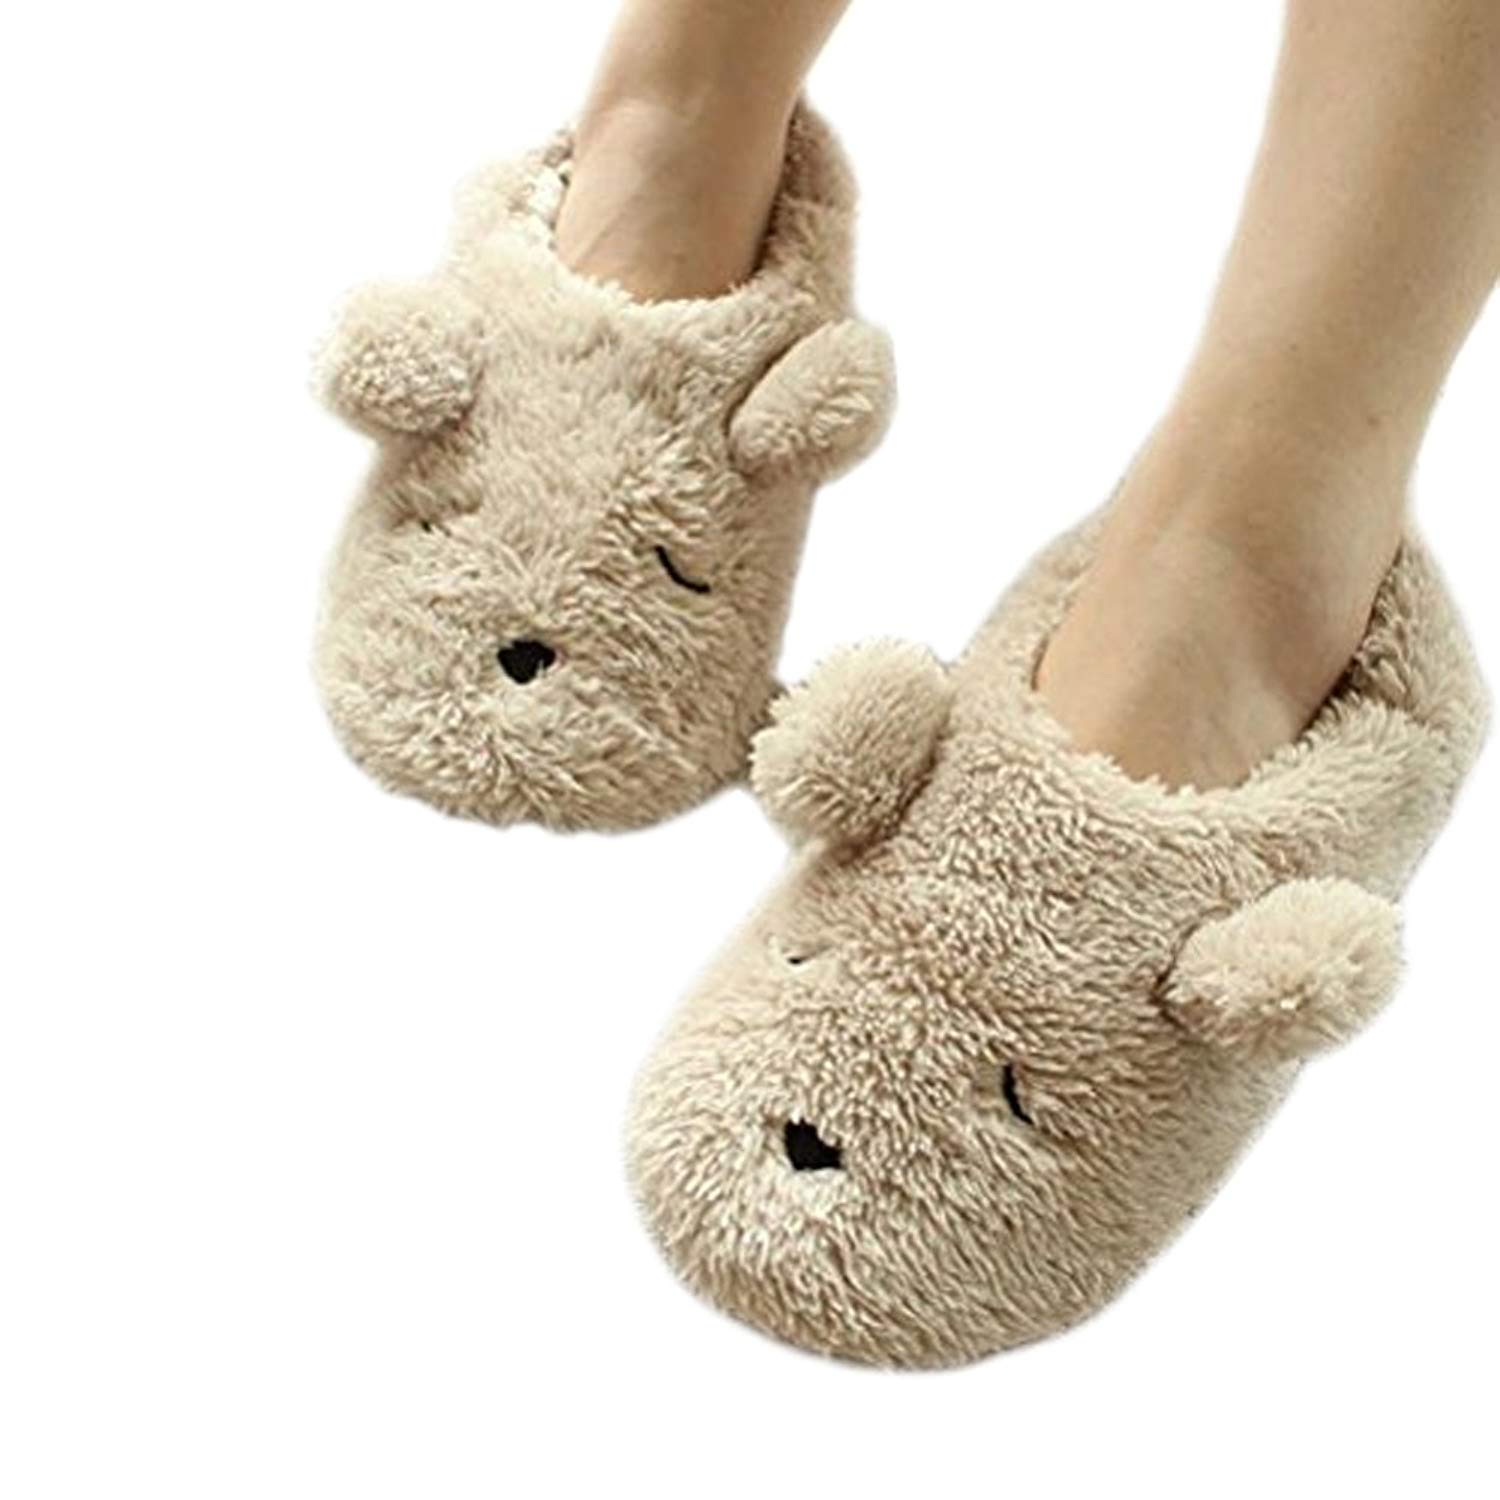 a19f24707e44 Get Quotations · Fakeface Winter Warm Fleece Slippers